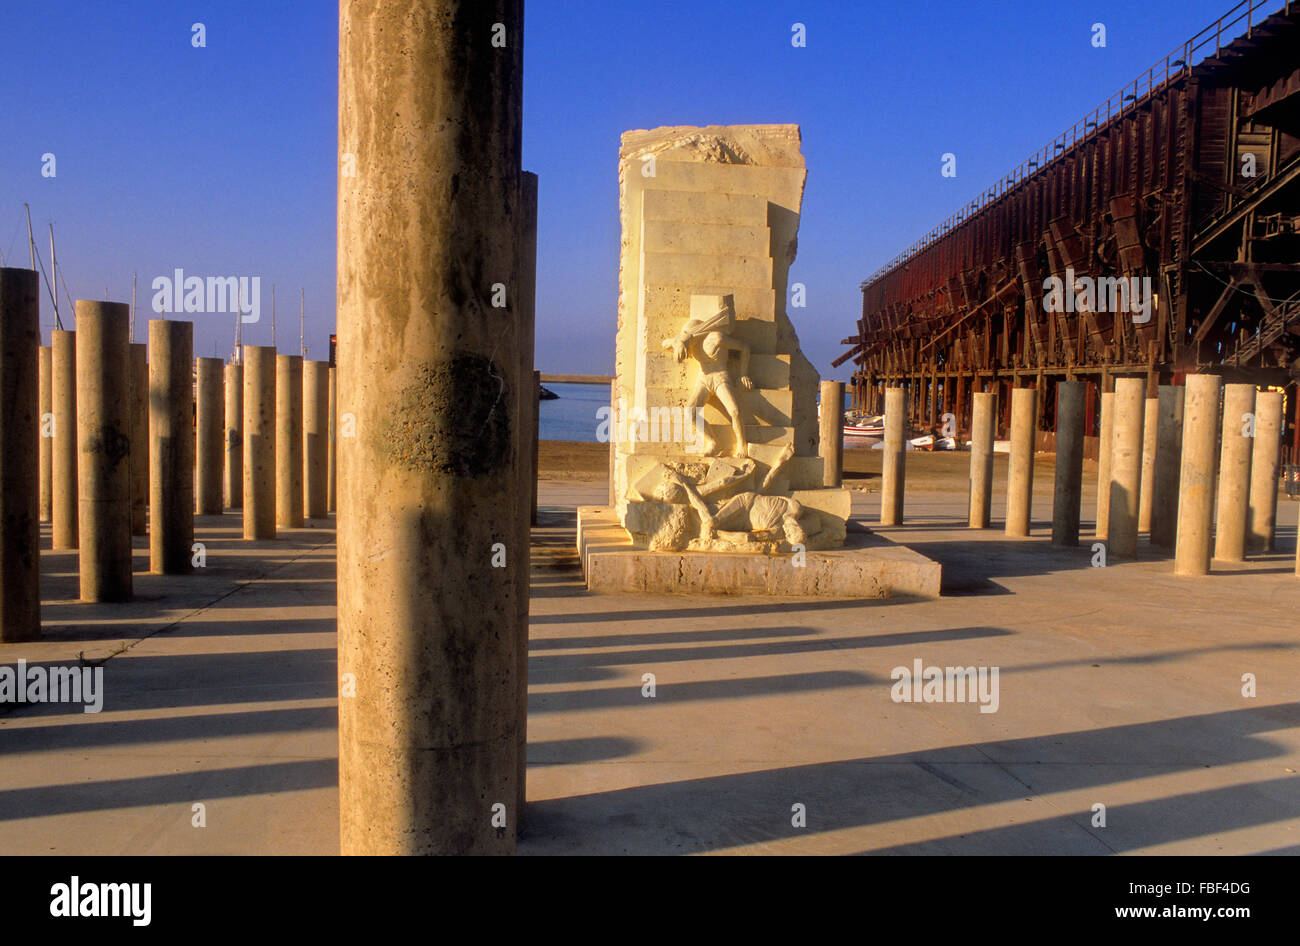 Monument to the 142 victims of the Holocaust (Mauthausen). Almeria. Andalucia, Spain - Stock Image